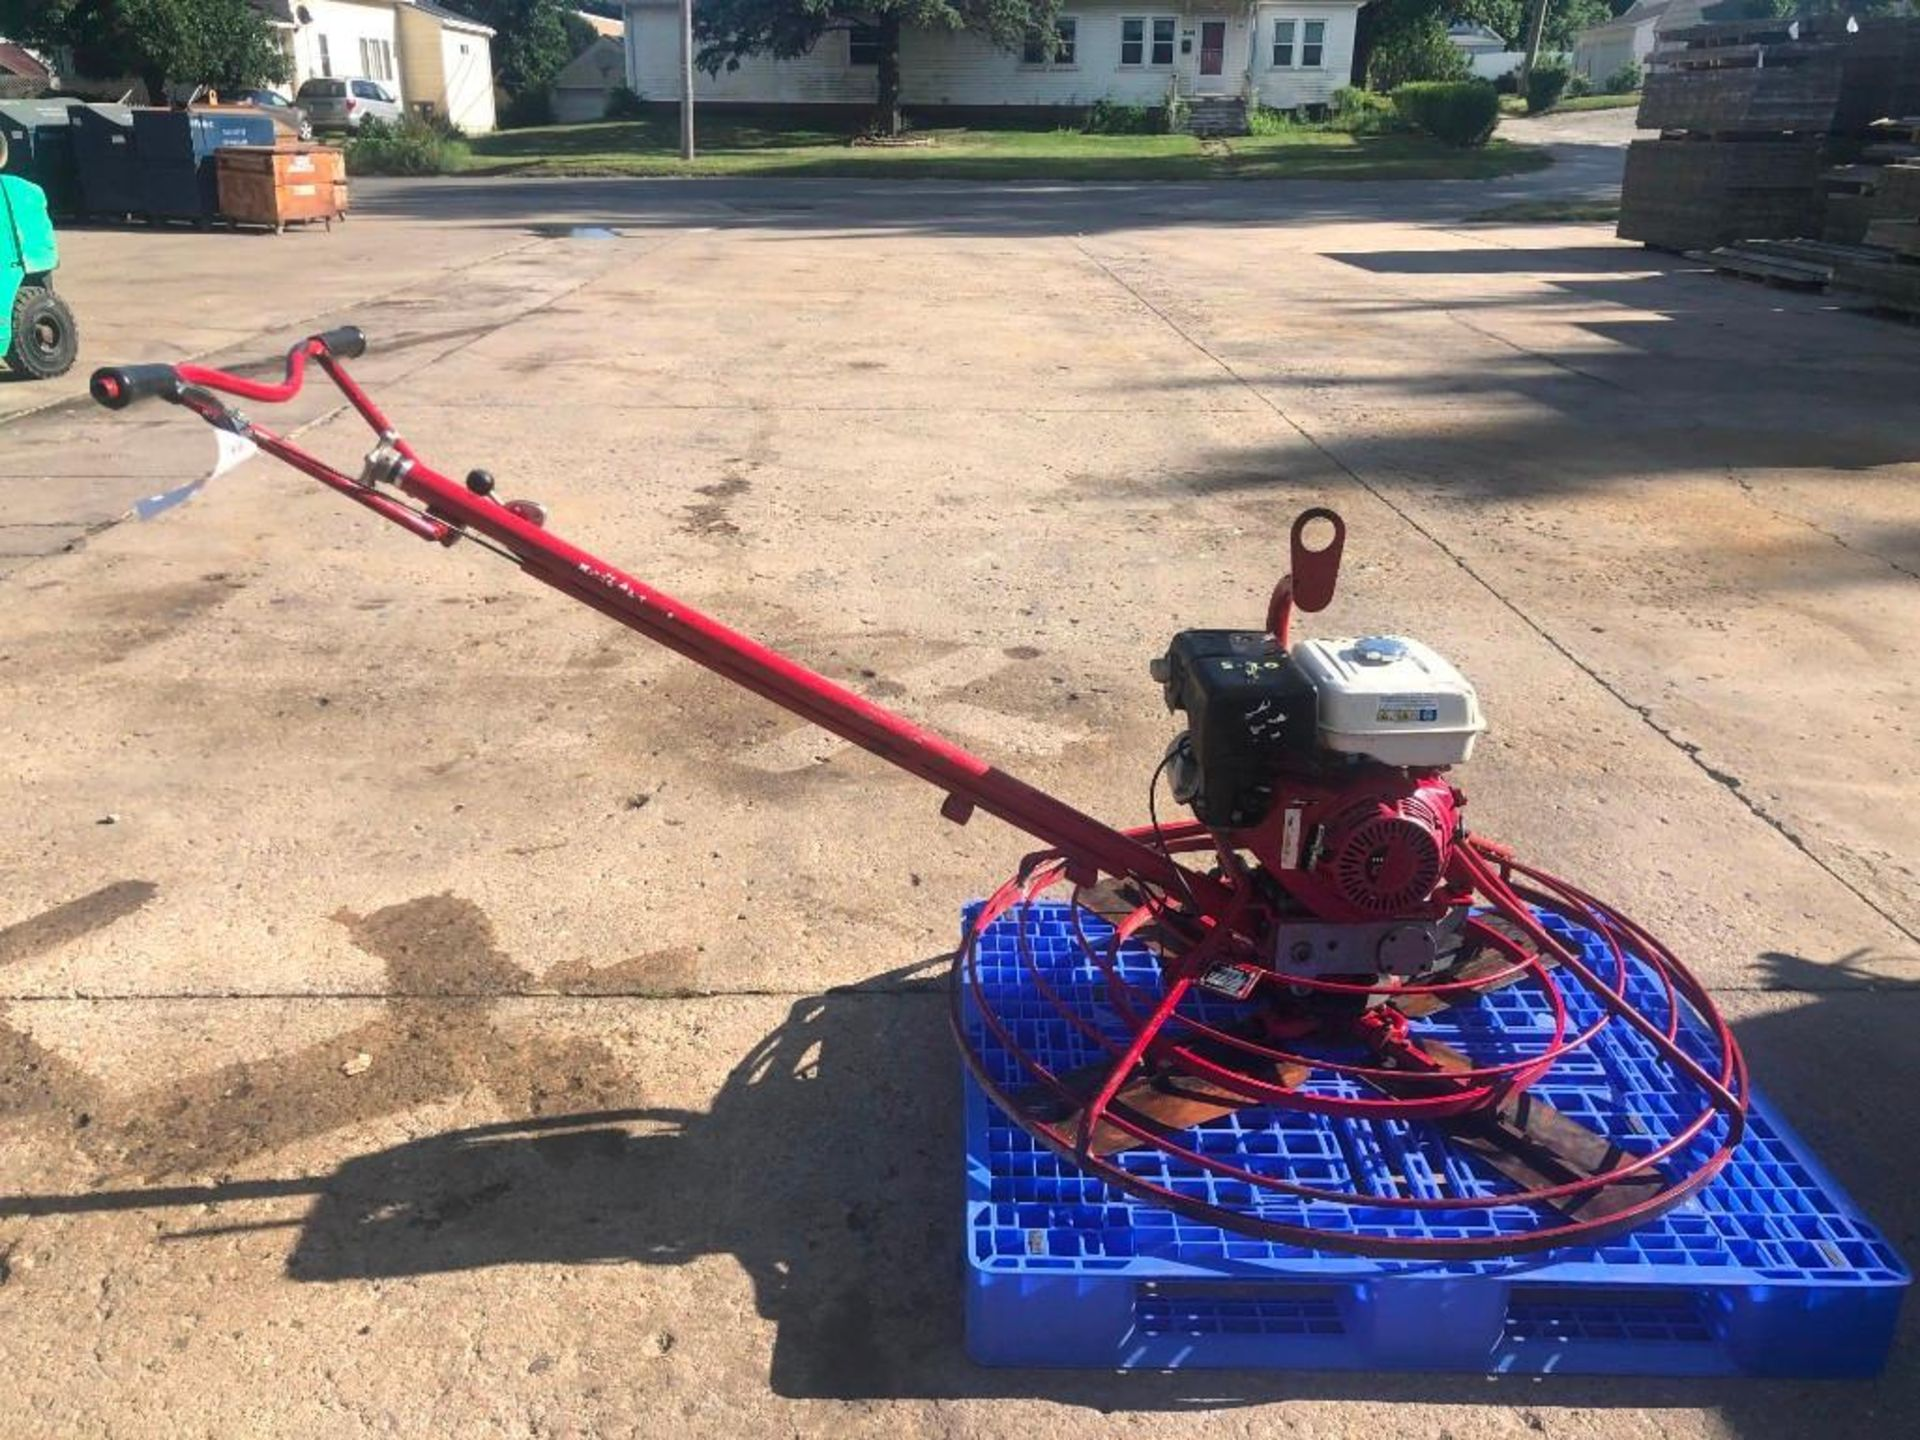 """Lot 106 - 46"""" Allen Engineering Power Trowel, Serial #4461007010, Model 446 BASIC. Located at 301 E Henry"""